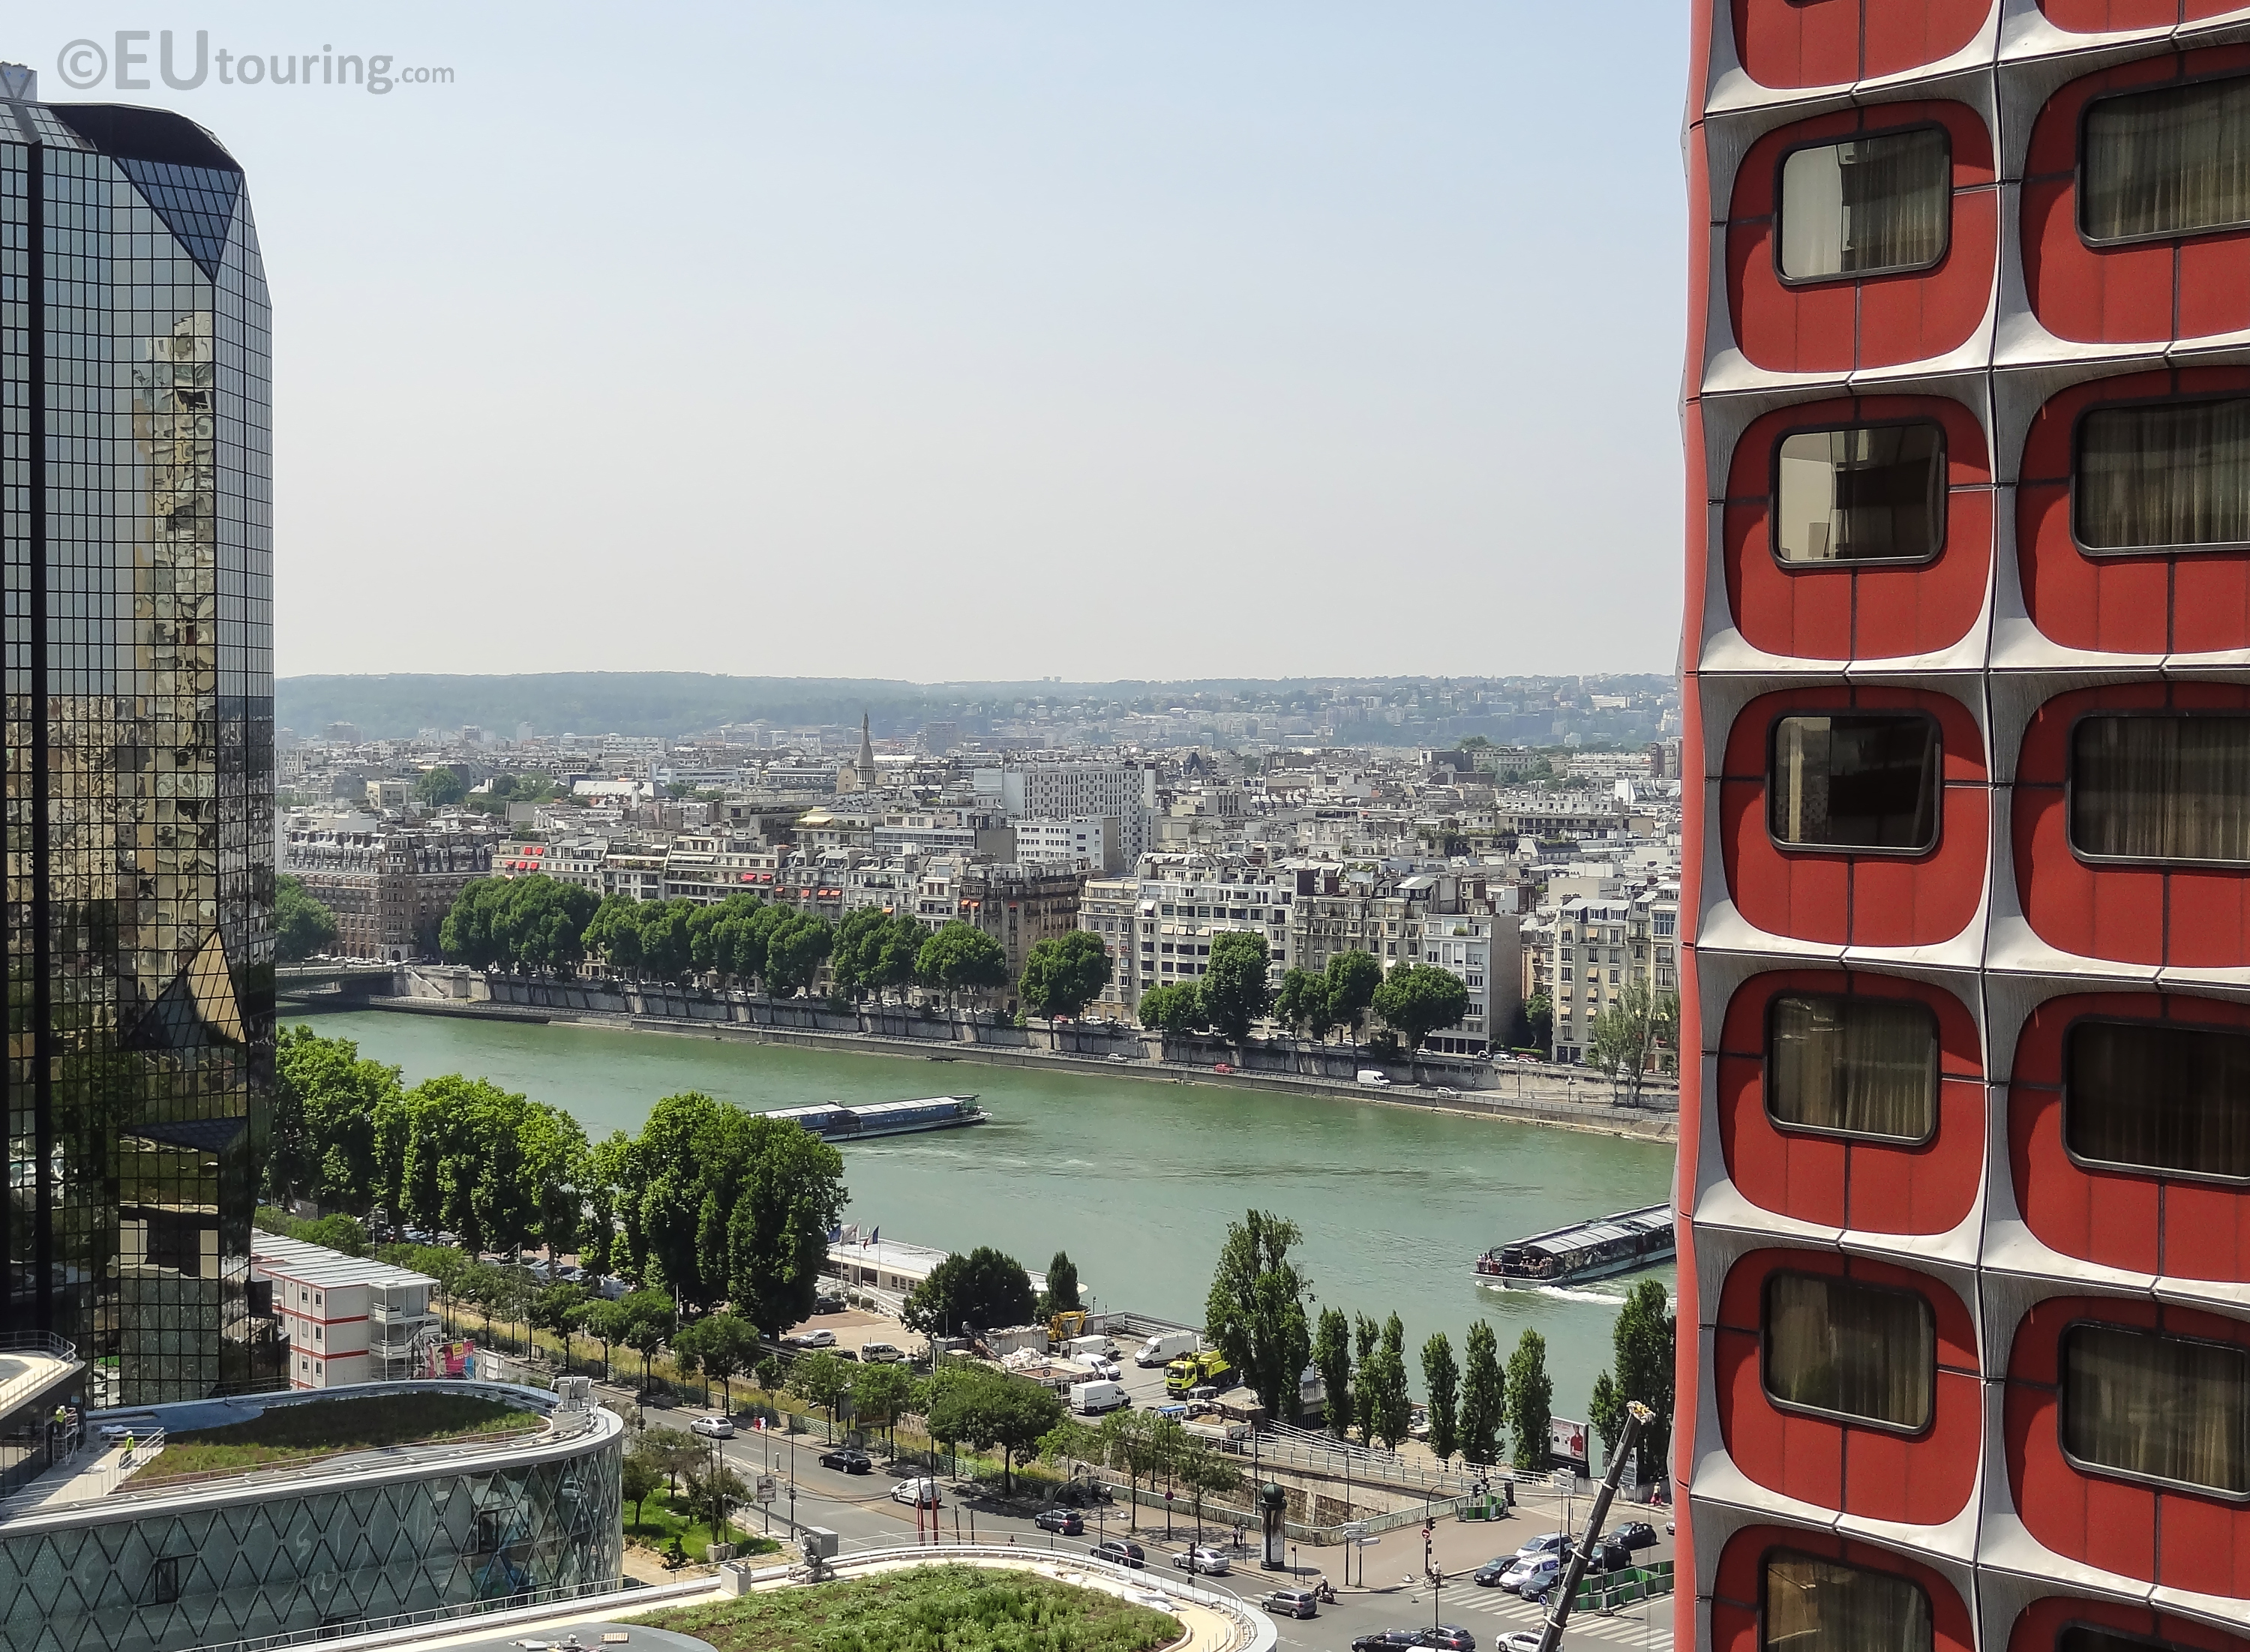 Between the building to the River Seine